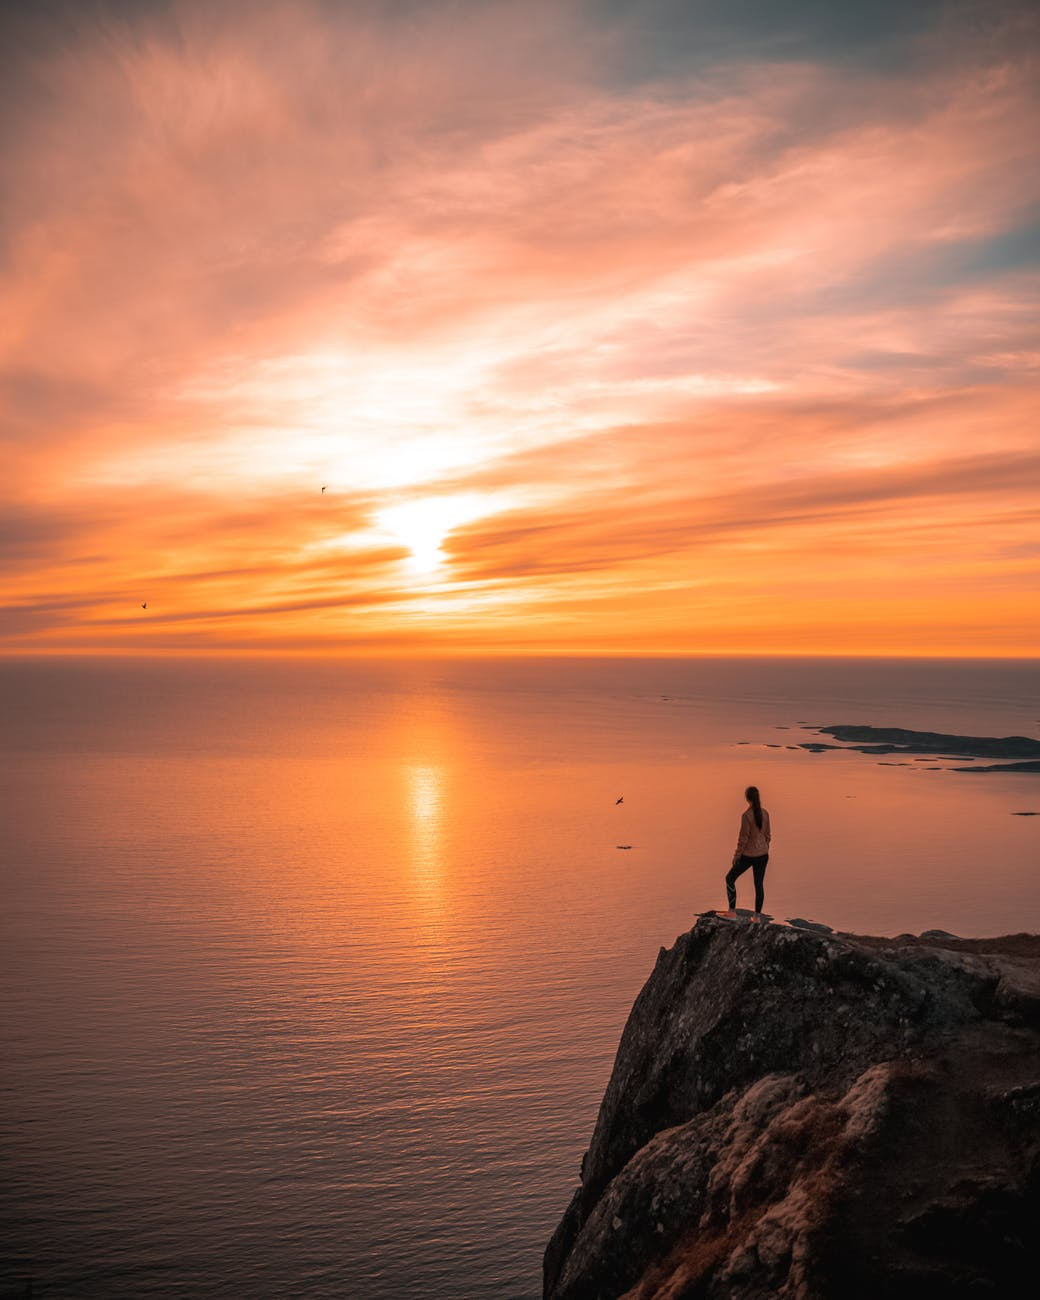 a person standing on a cliff overlooking the sea during golden hour